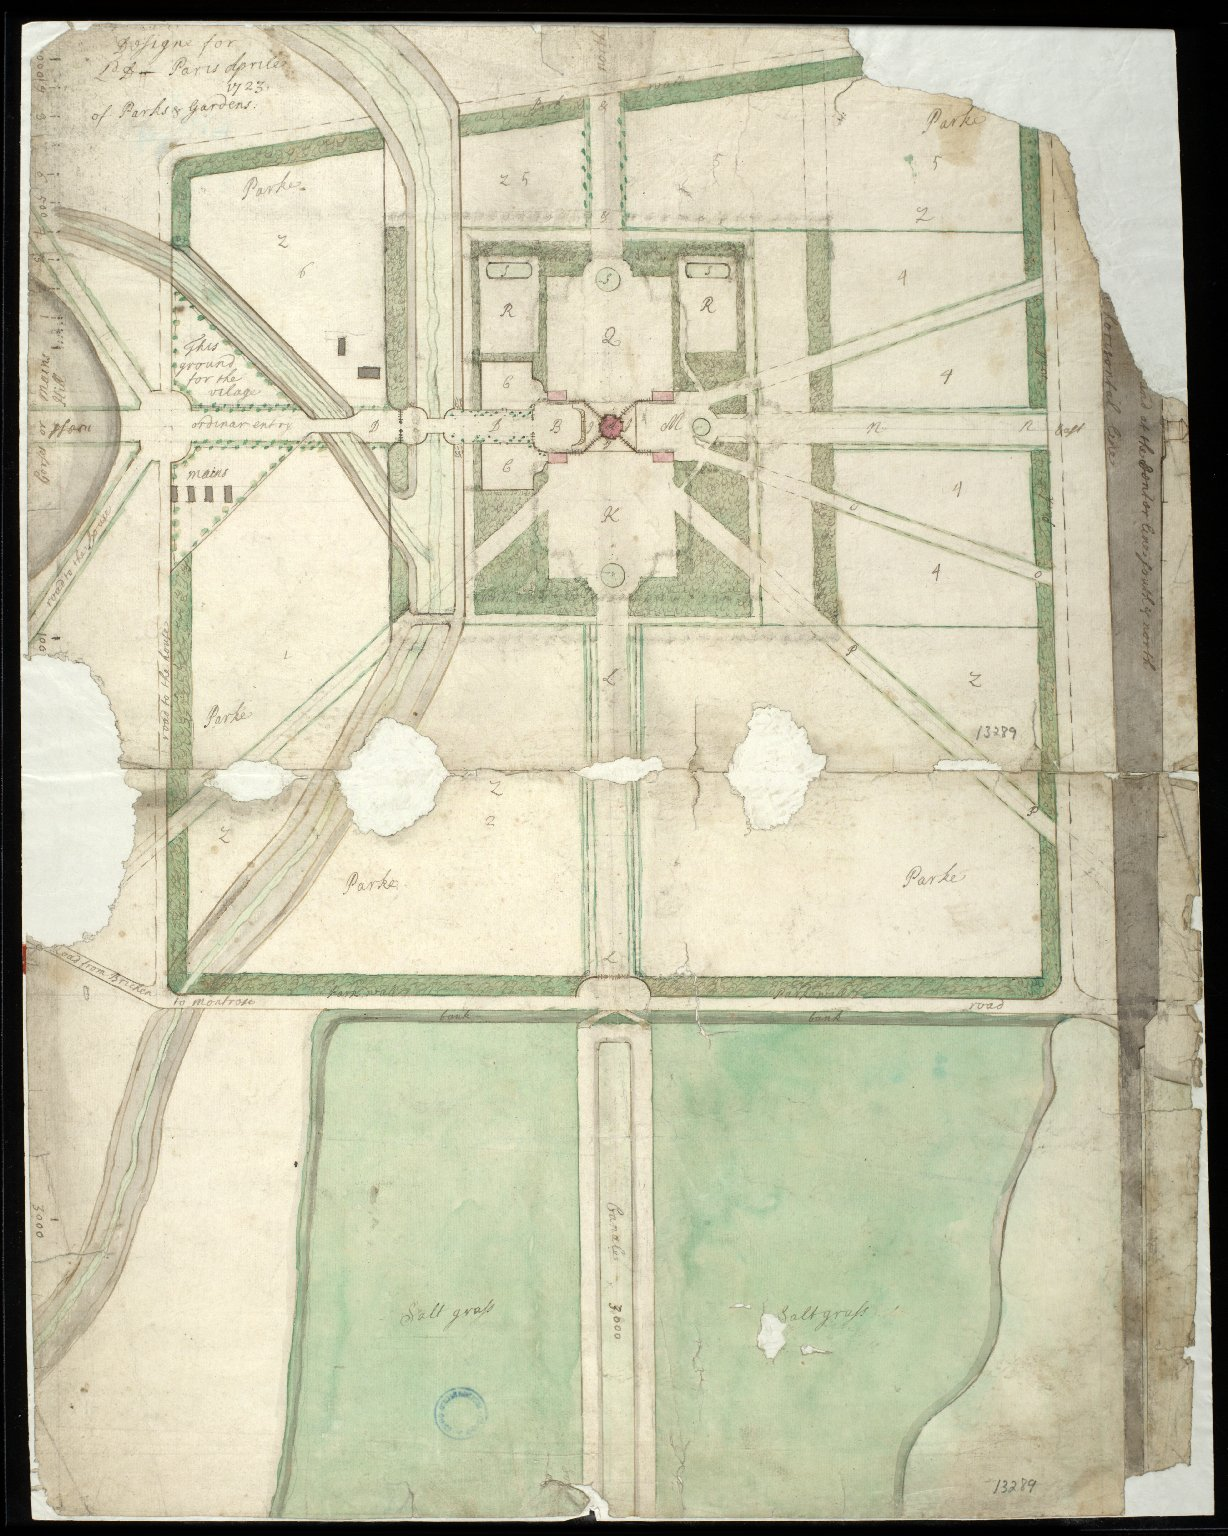 Designe for Ld D Paris Aprile 1723 of Parks & Gardens [1 of 1]